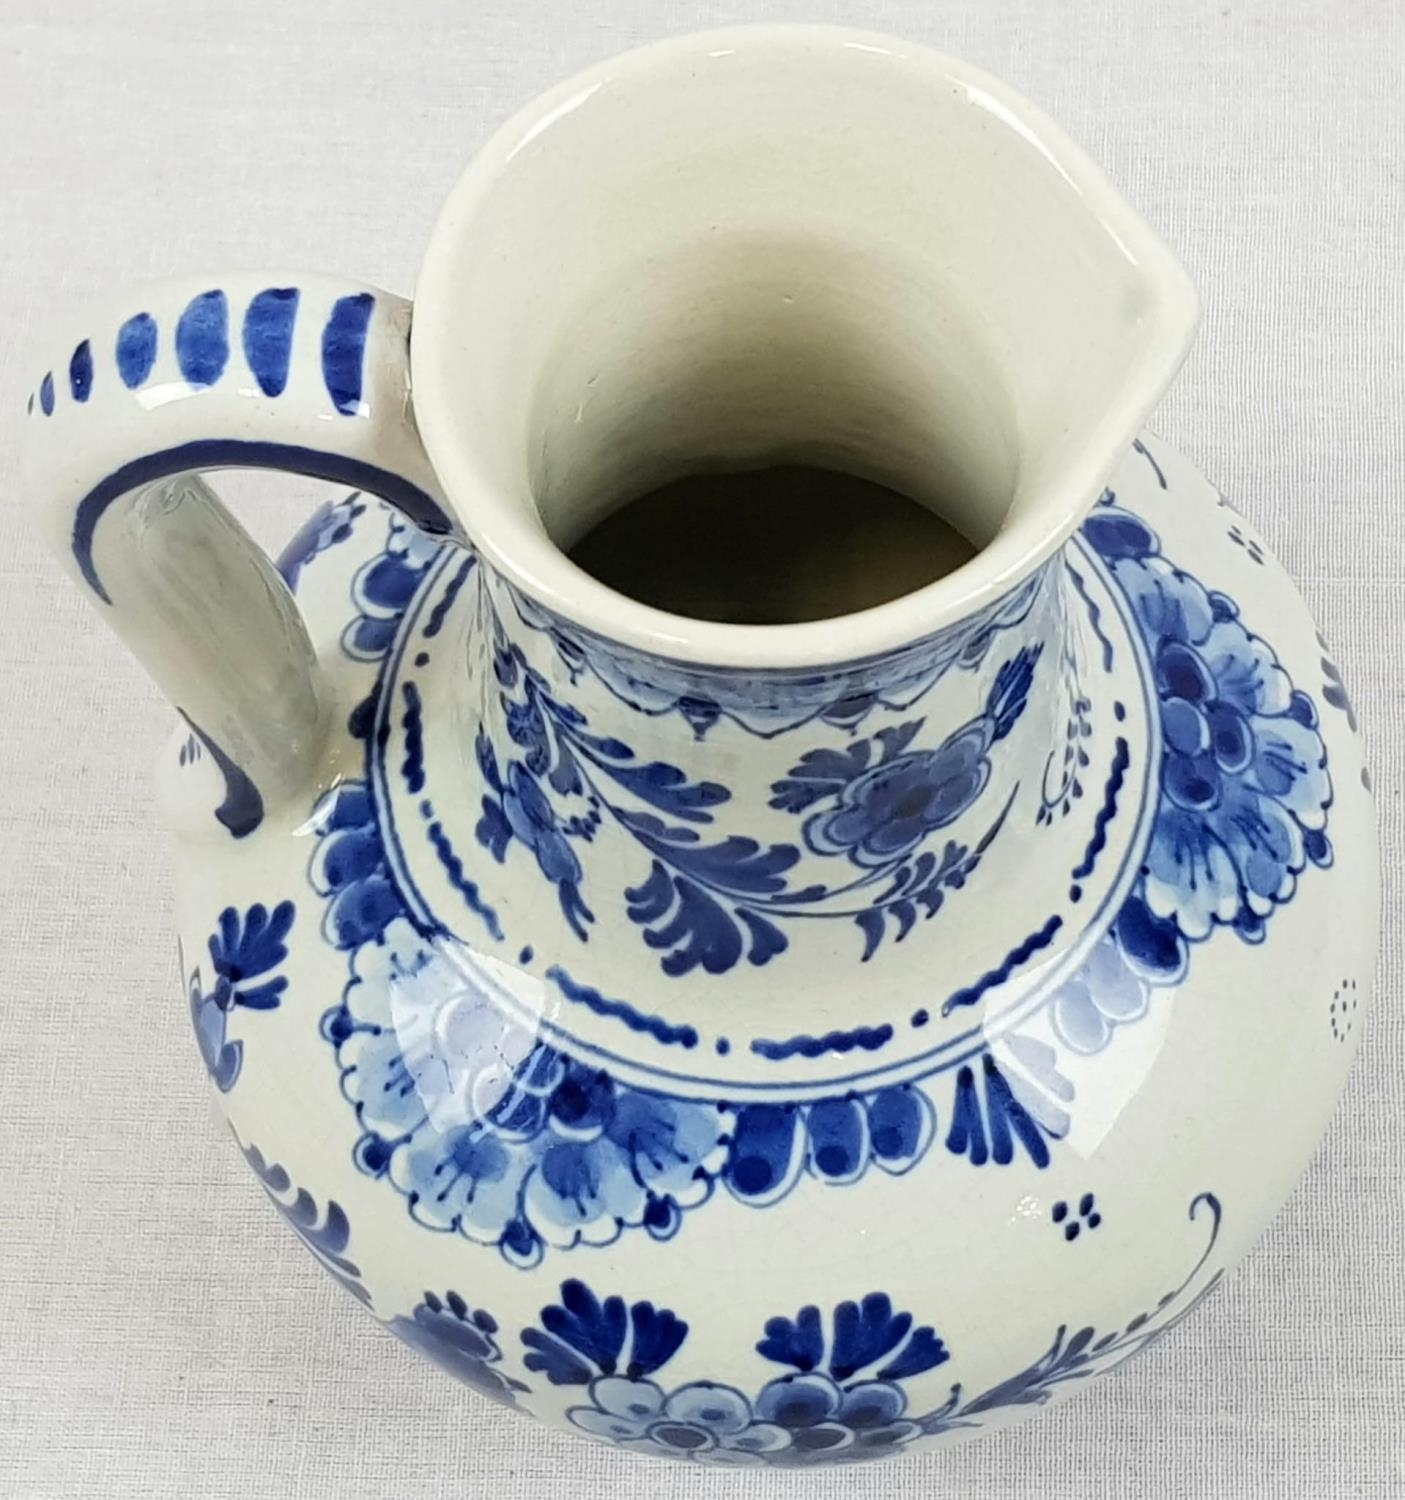 Vintage Delft Blue and White Water Jug. Signed on Base. Good Condition. 18cm tall. - Image 3 of 4